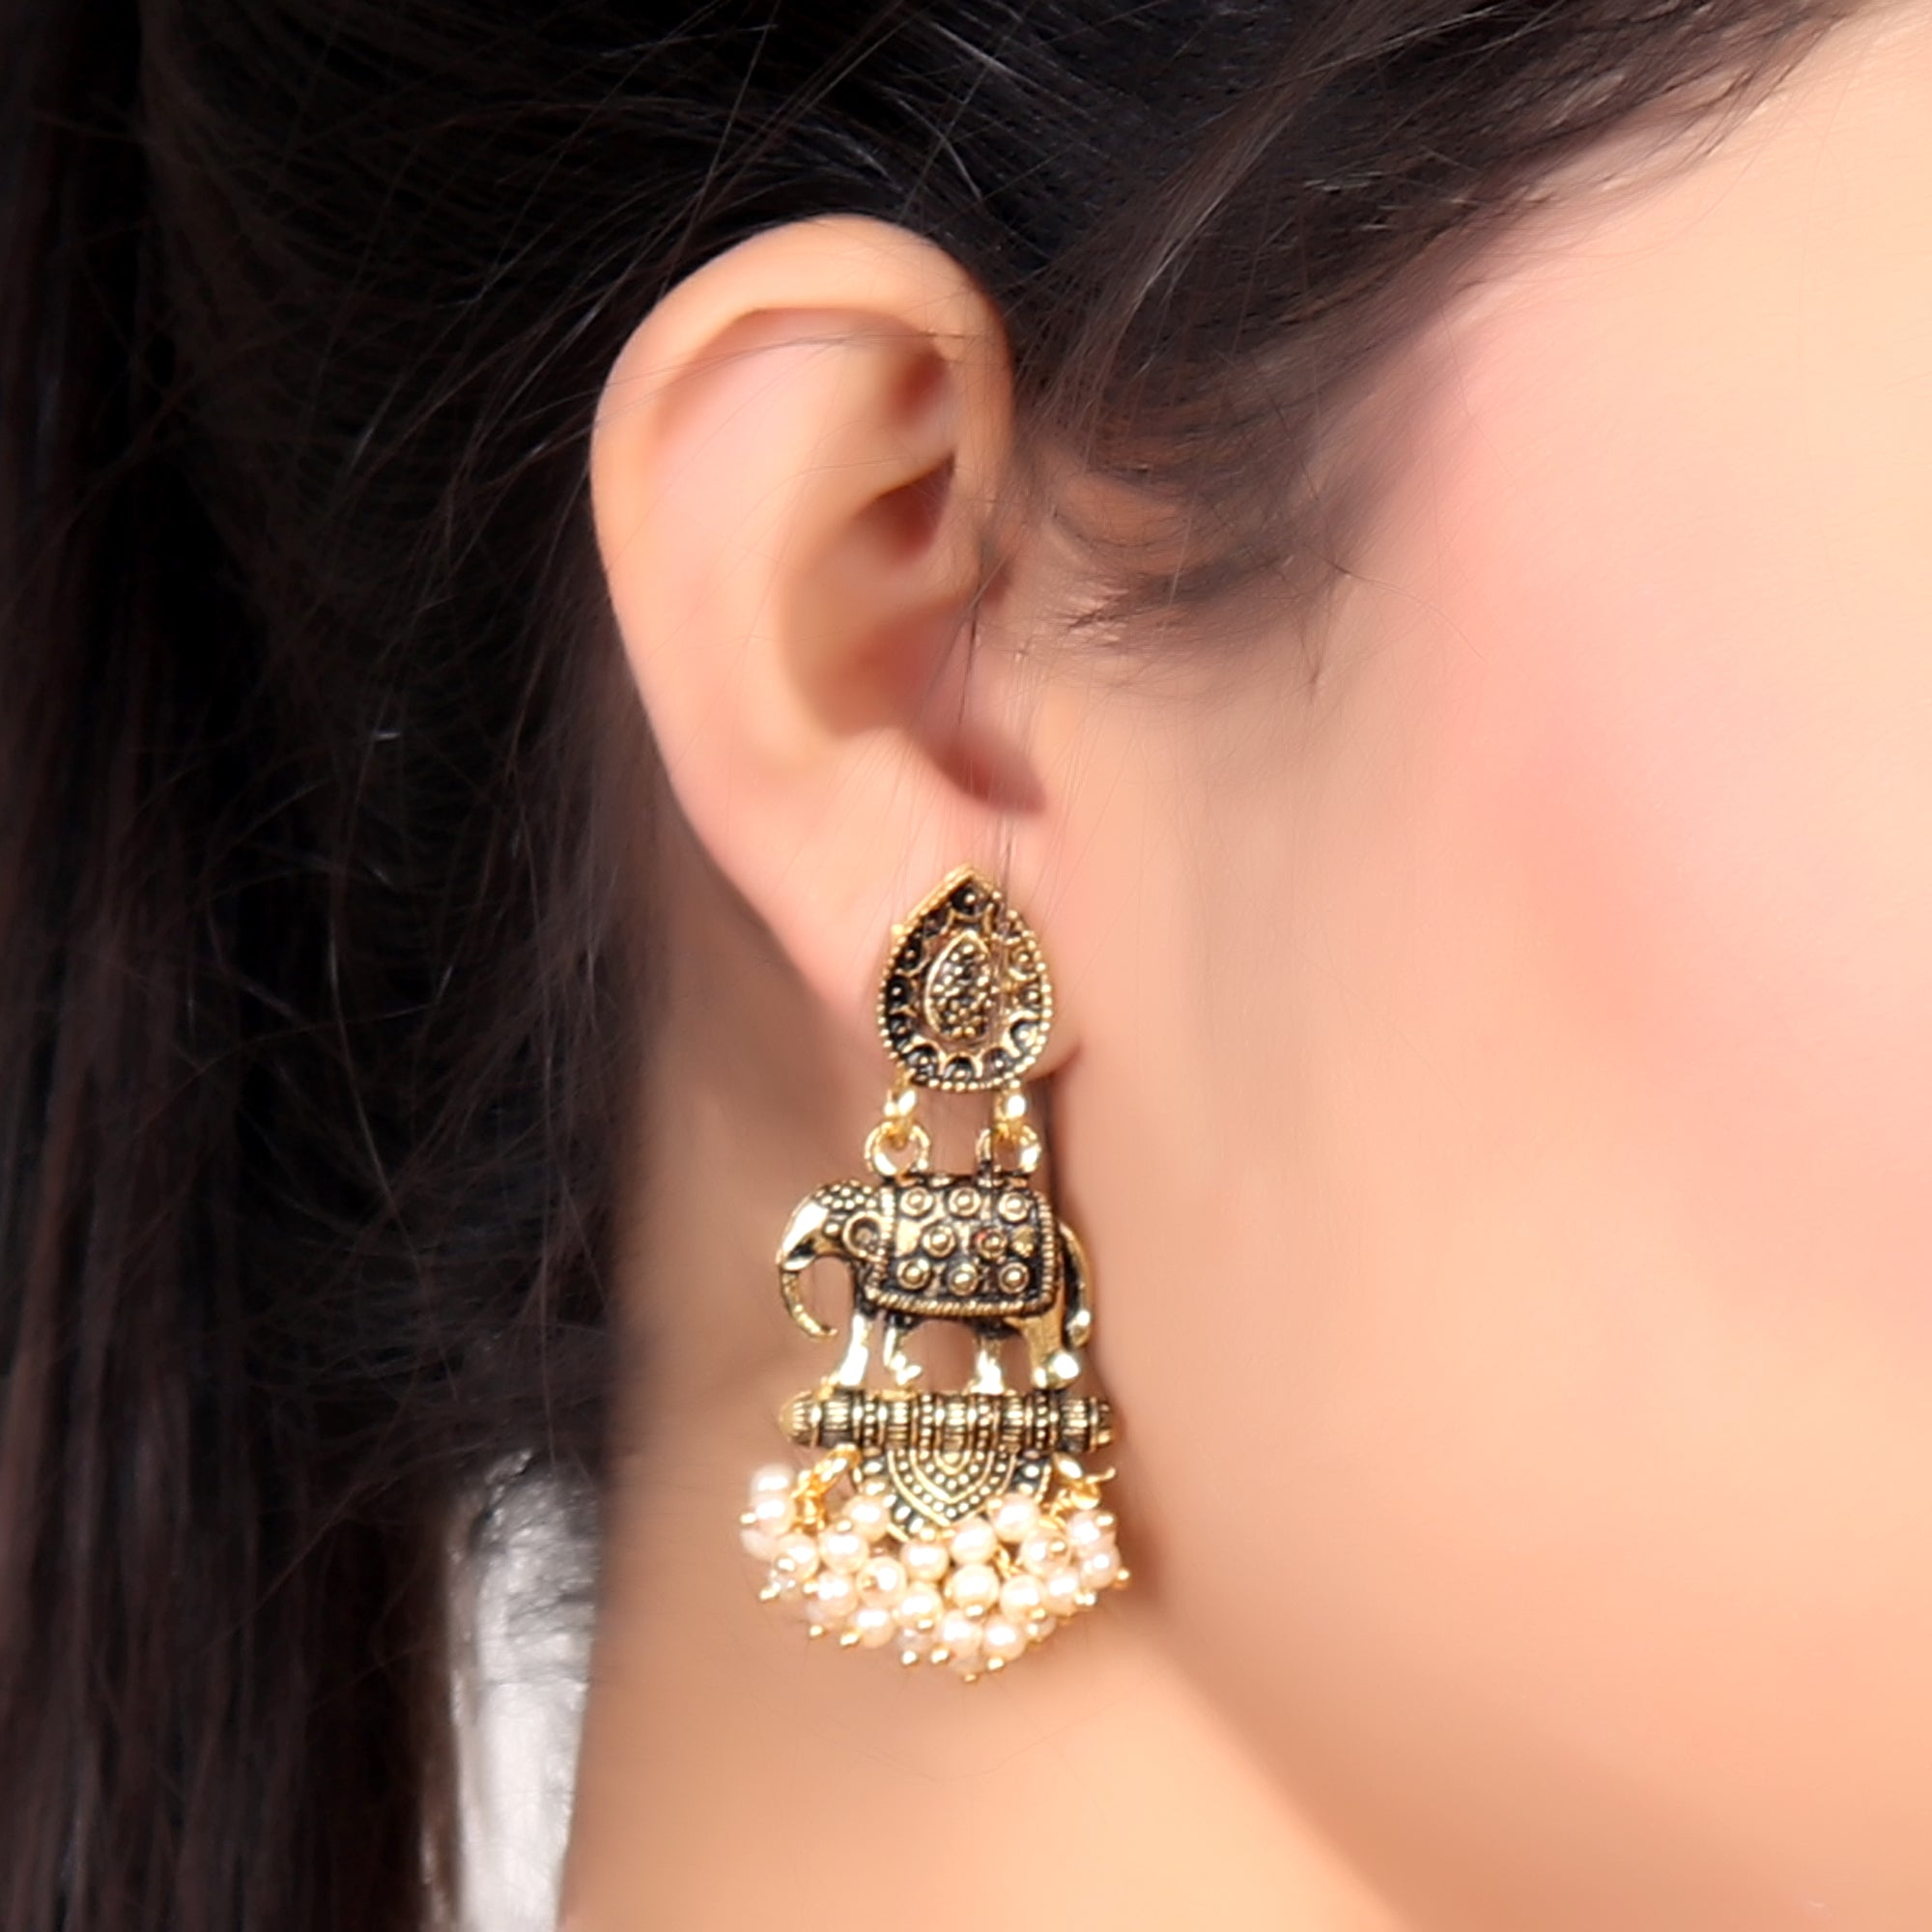 Earrings,Elephanta Earrings - Cippele Multi Store